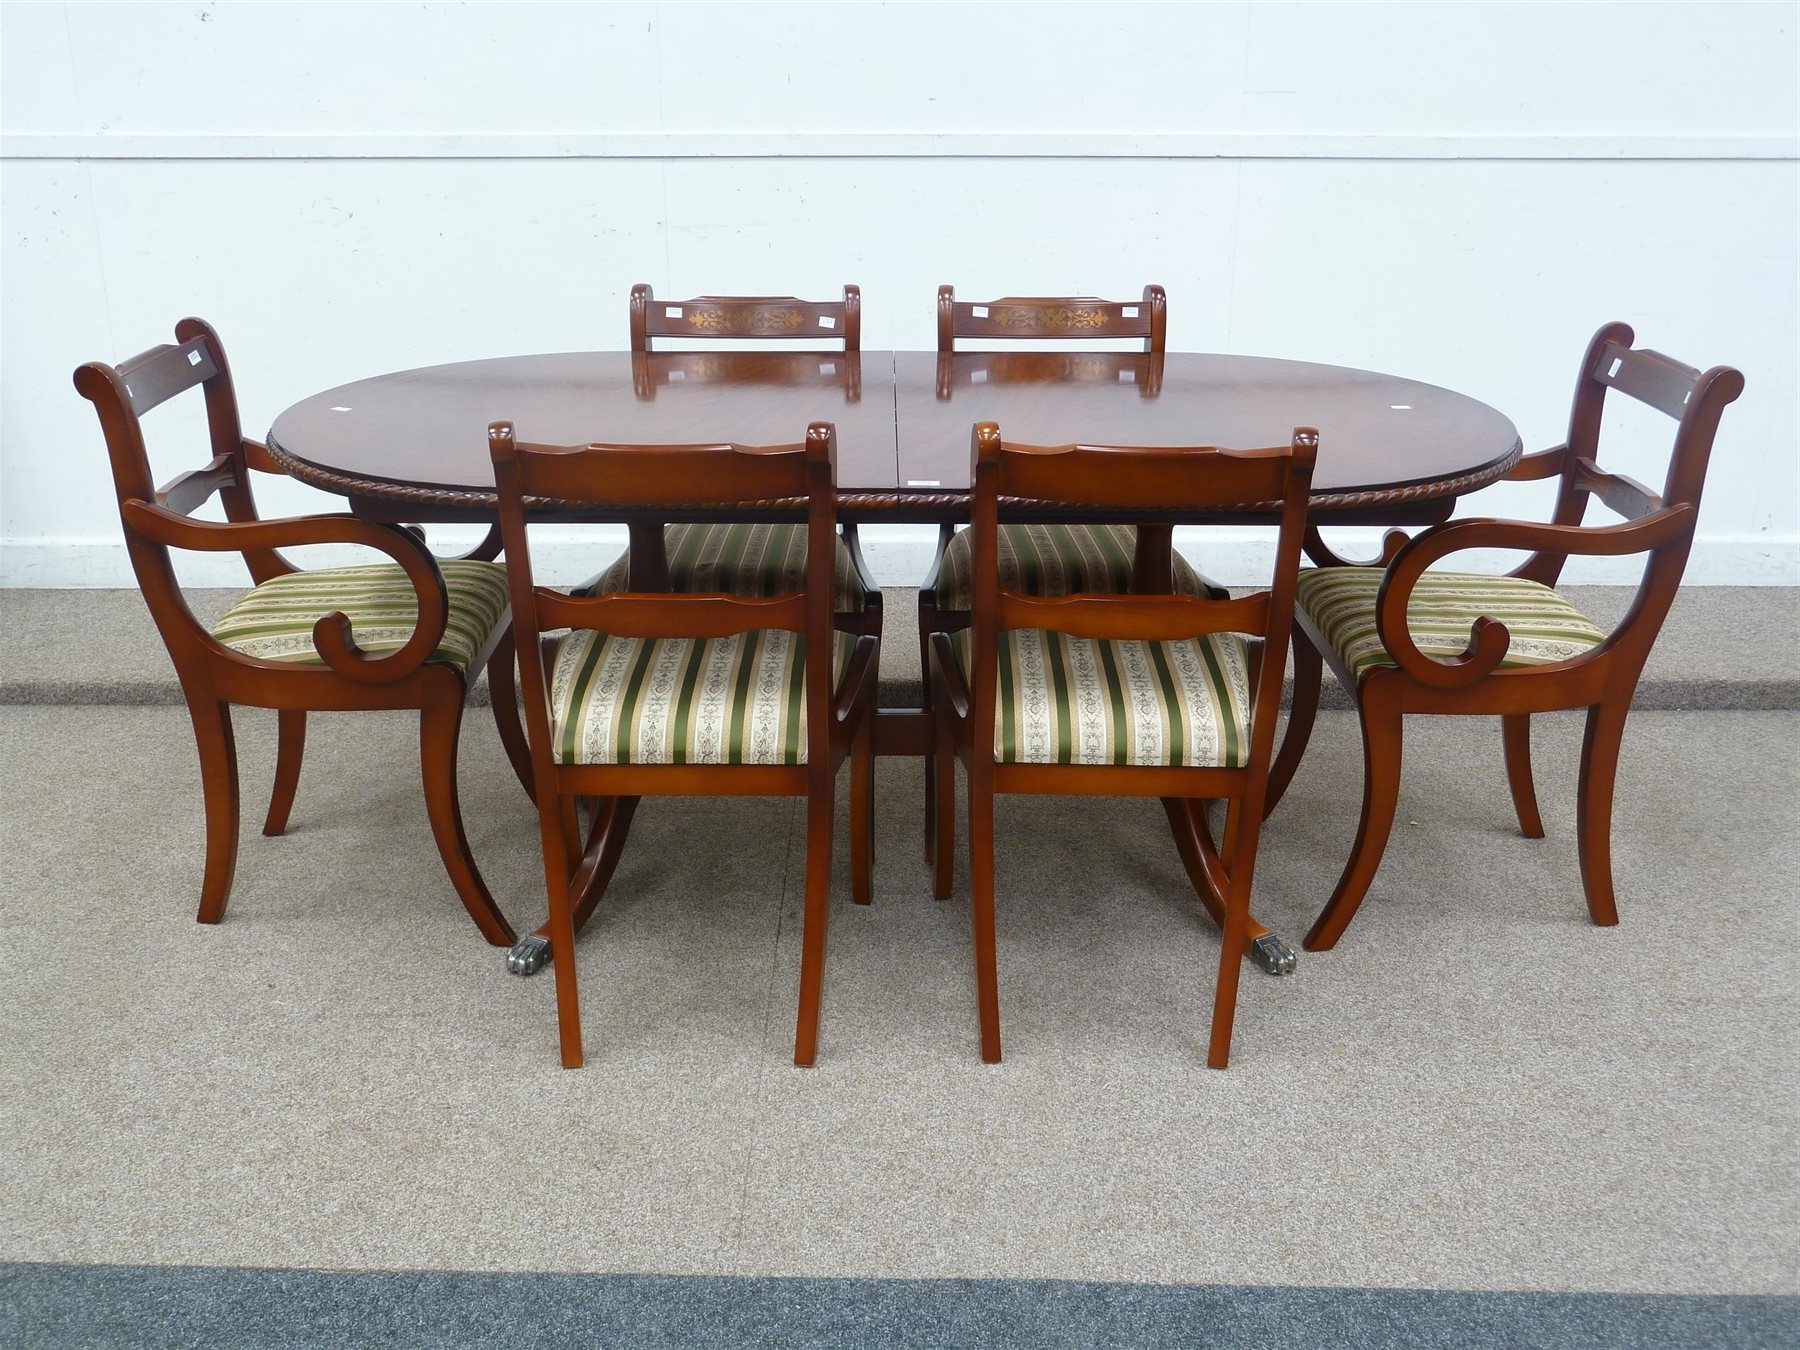 Widely Used Mahogany Extending Dining Tables And Chairs In Beresford & Hicks Regency Style Reproduction Mahogany Extending (View 24 of 25)